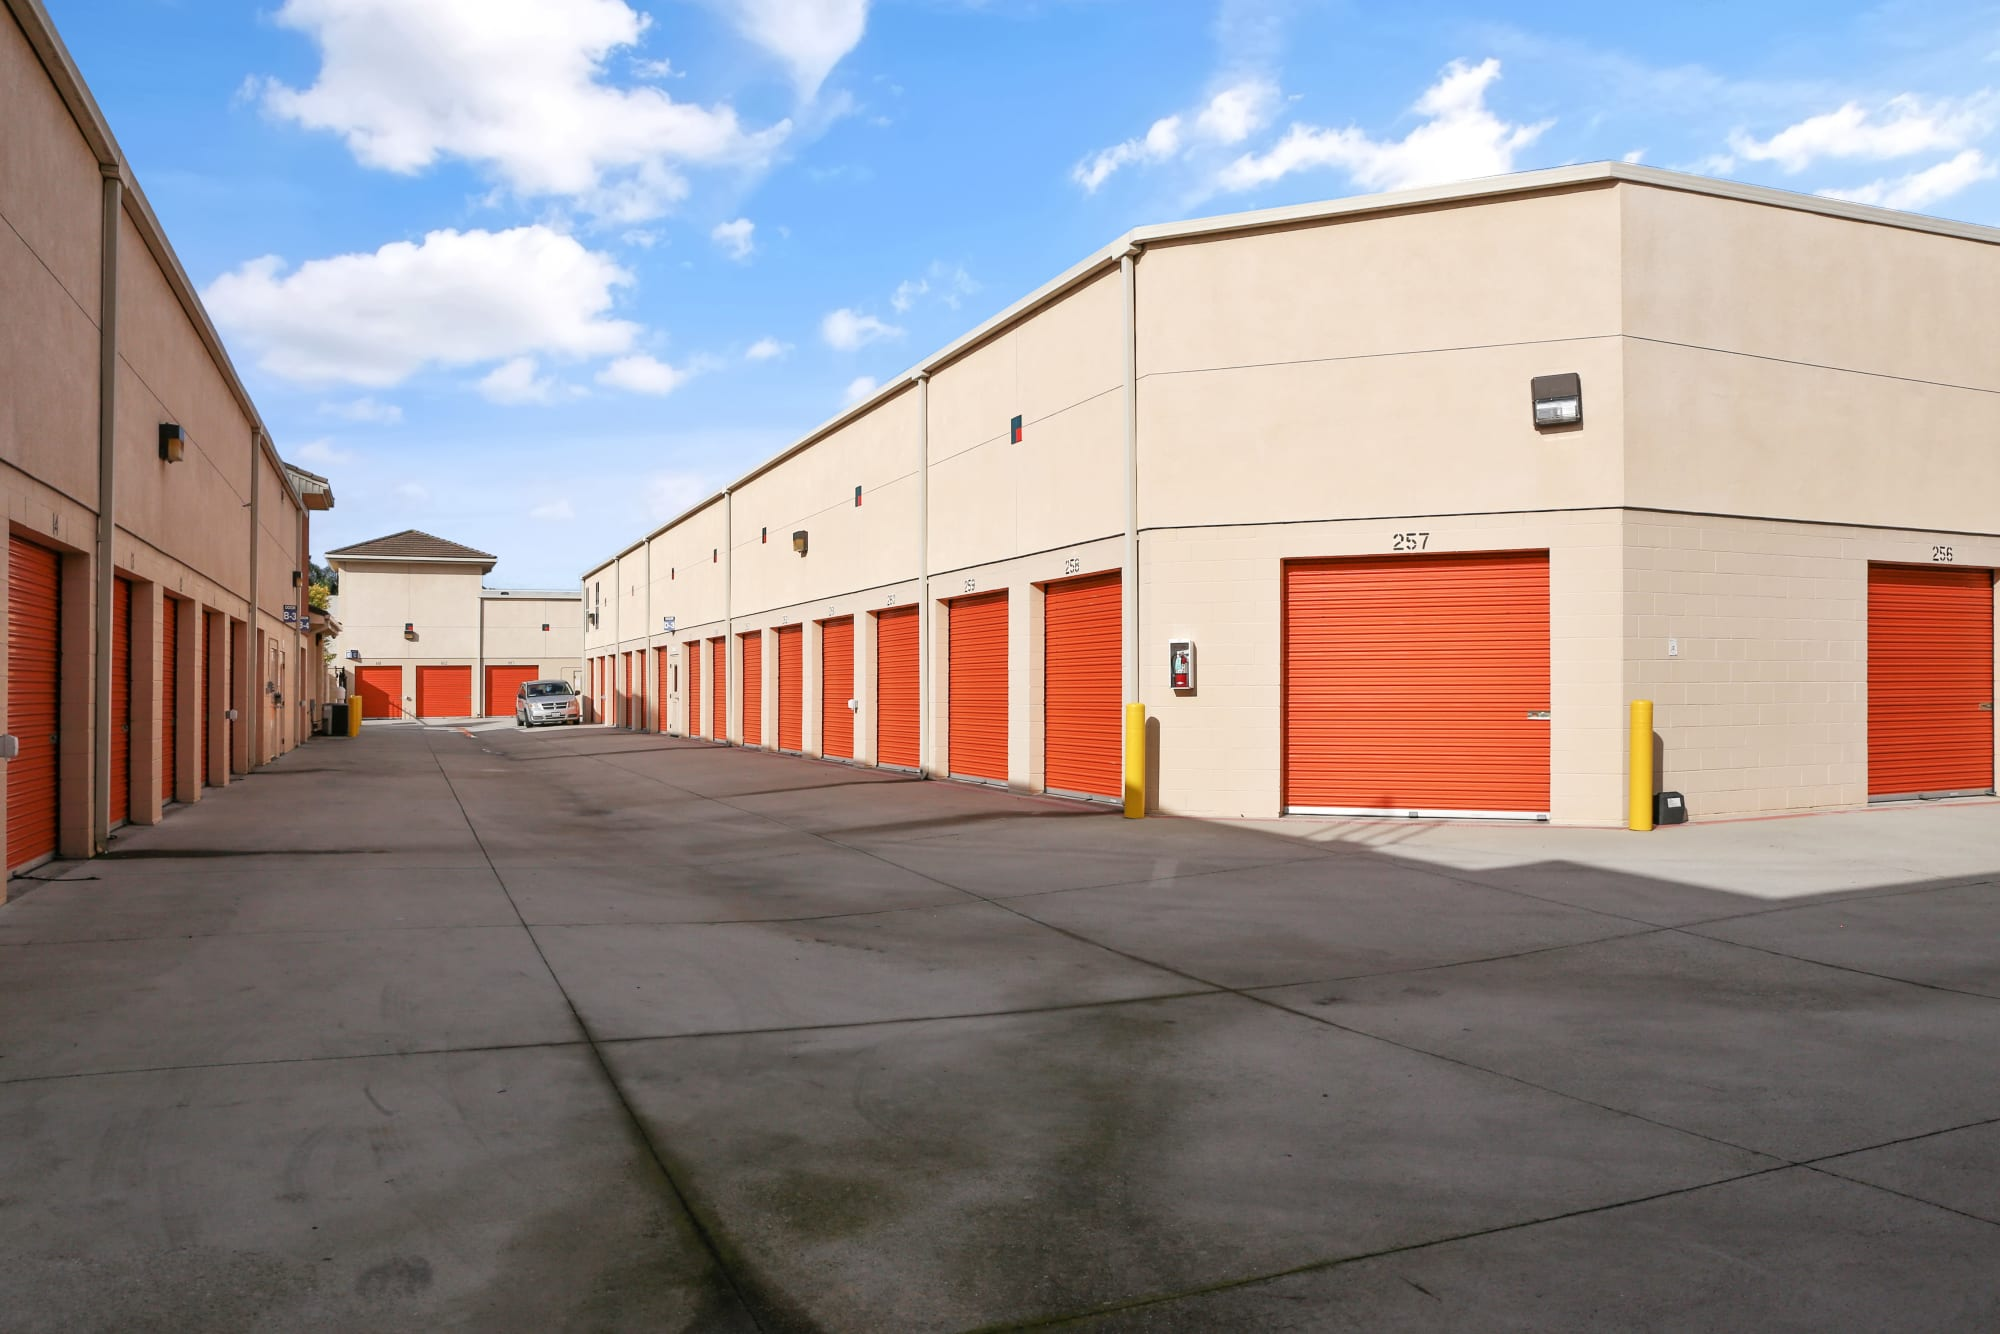 Wide driveways for easy outdoor accessed storage at A-1 Self Storage in Cypress, California